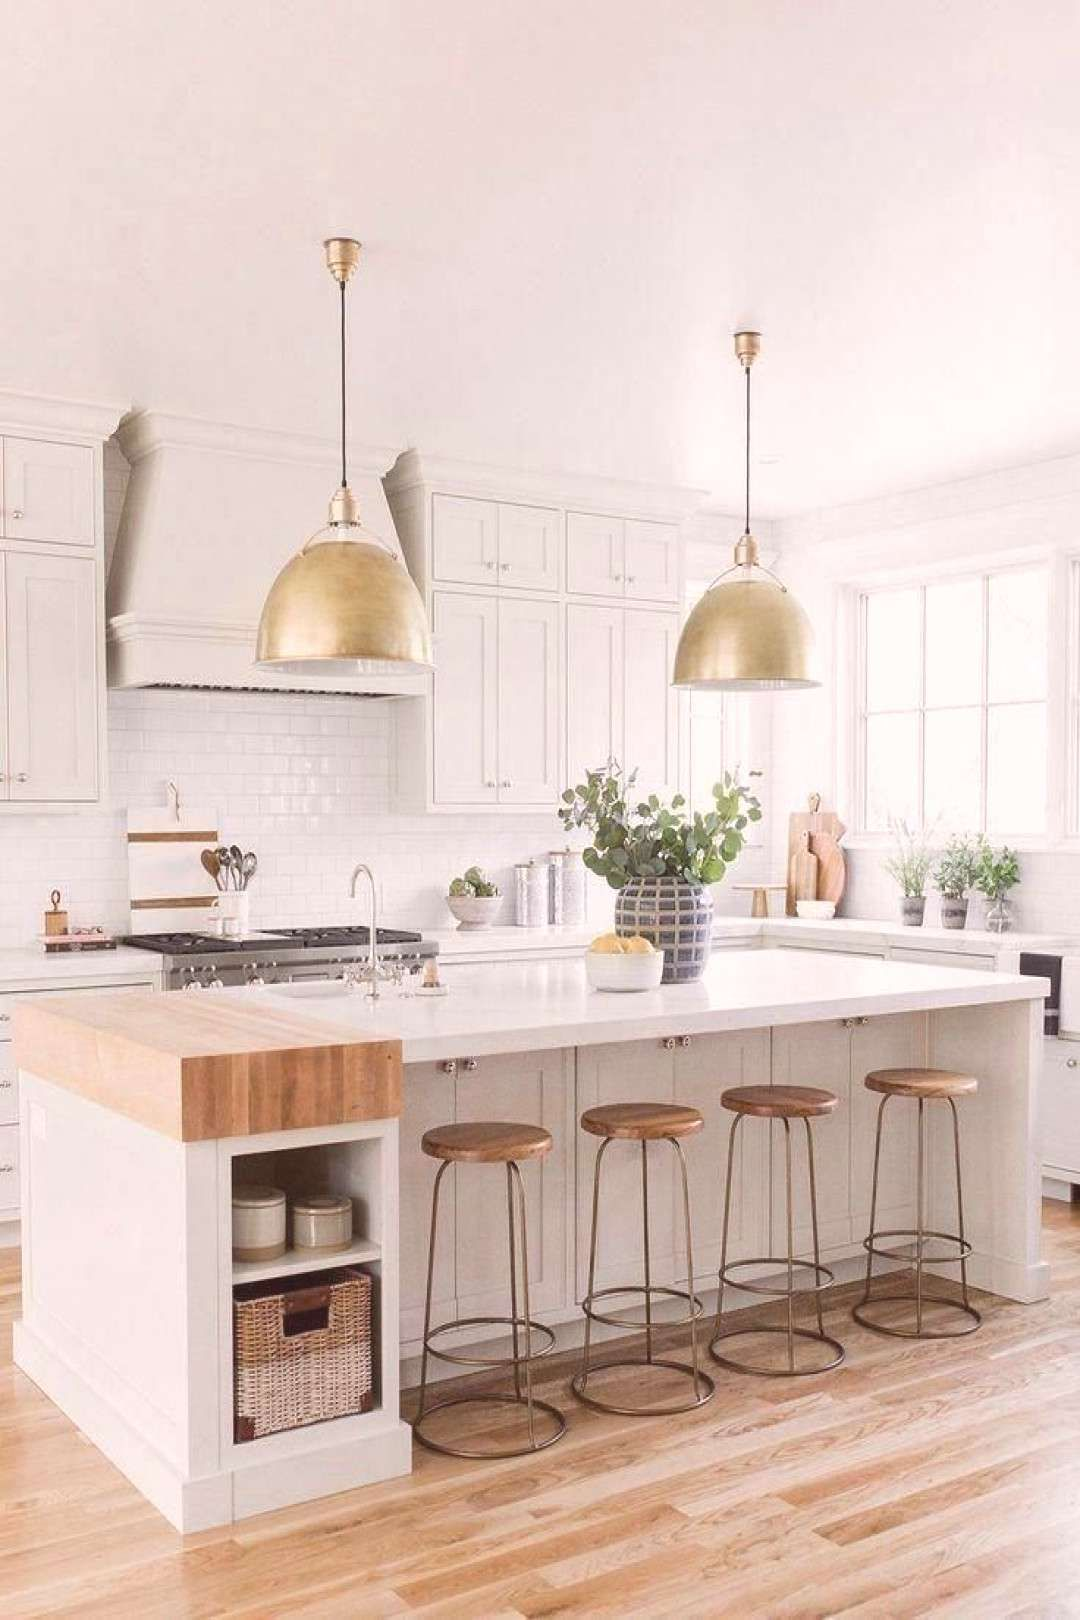 Kitchendesign Pendants Kitchens Finishes Stunning Studio Shade These Great Looks Their Metal Contemporary Kitchen Home Decor Kitchen Kitchen Trends